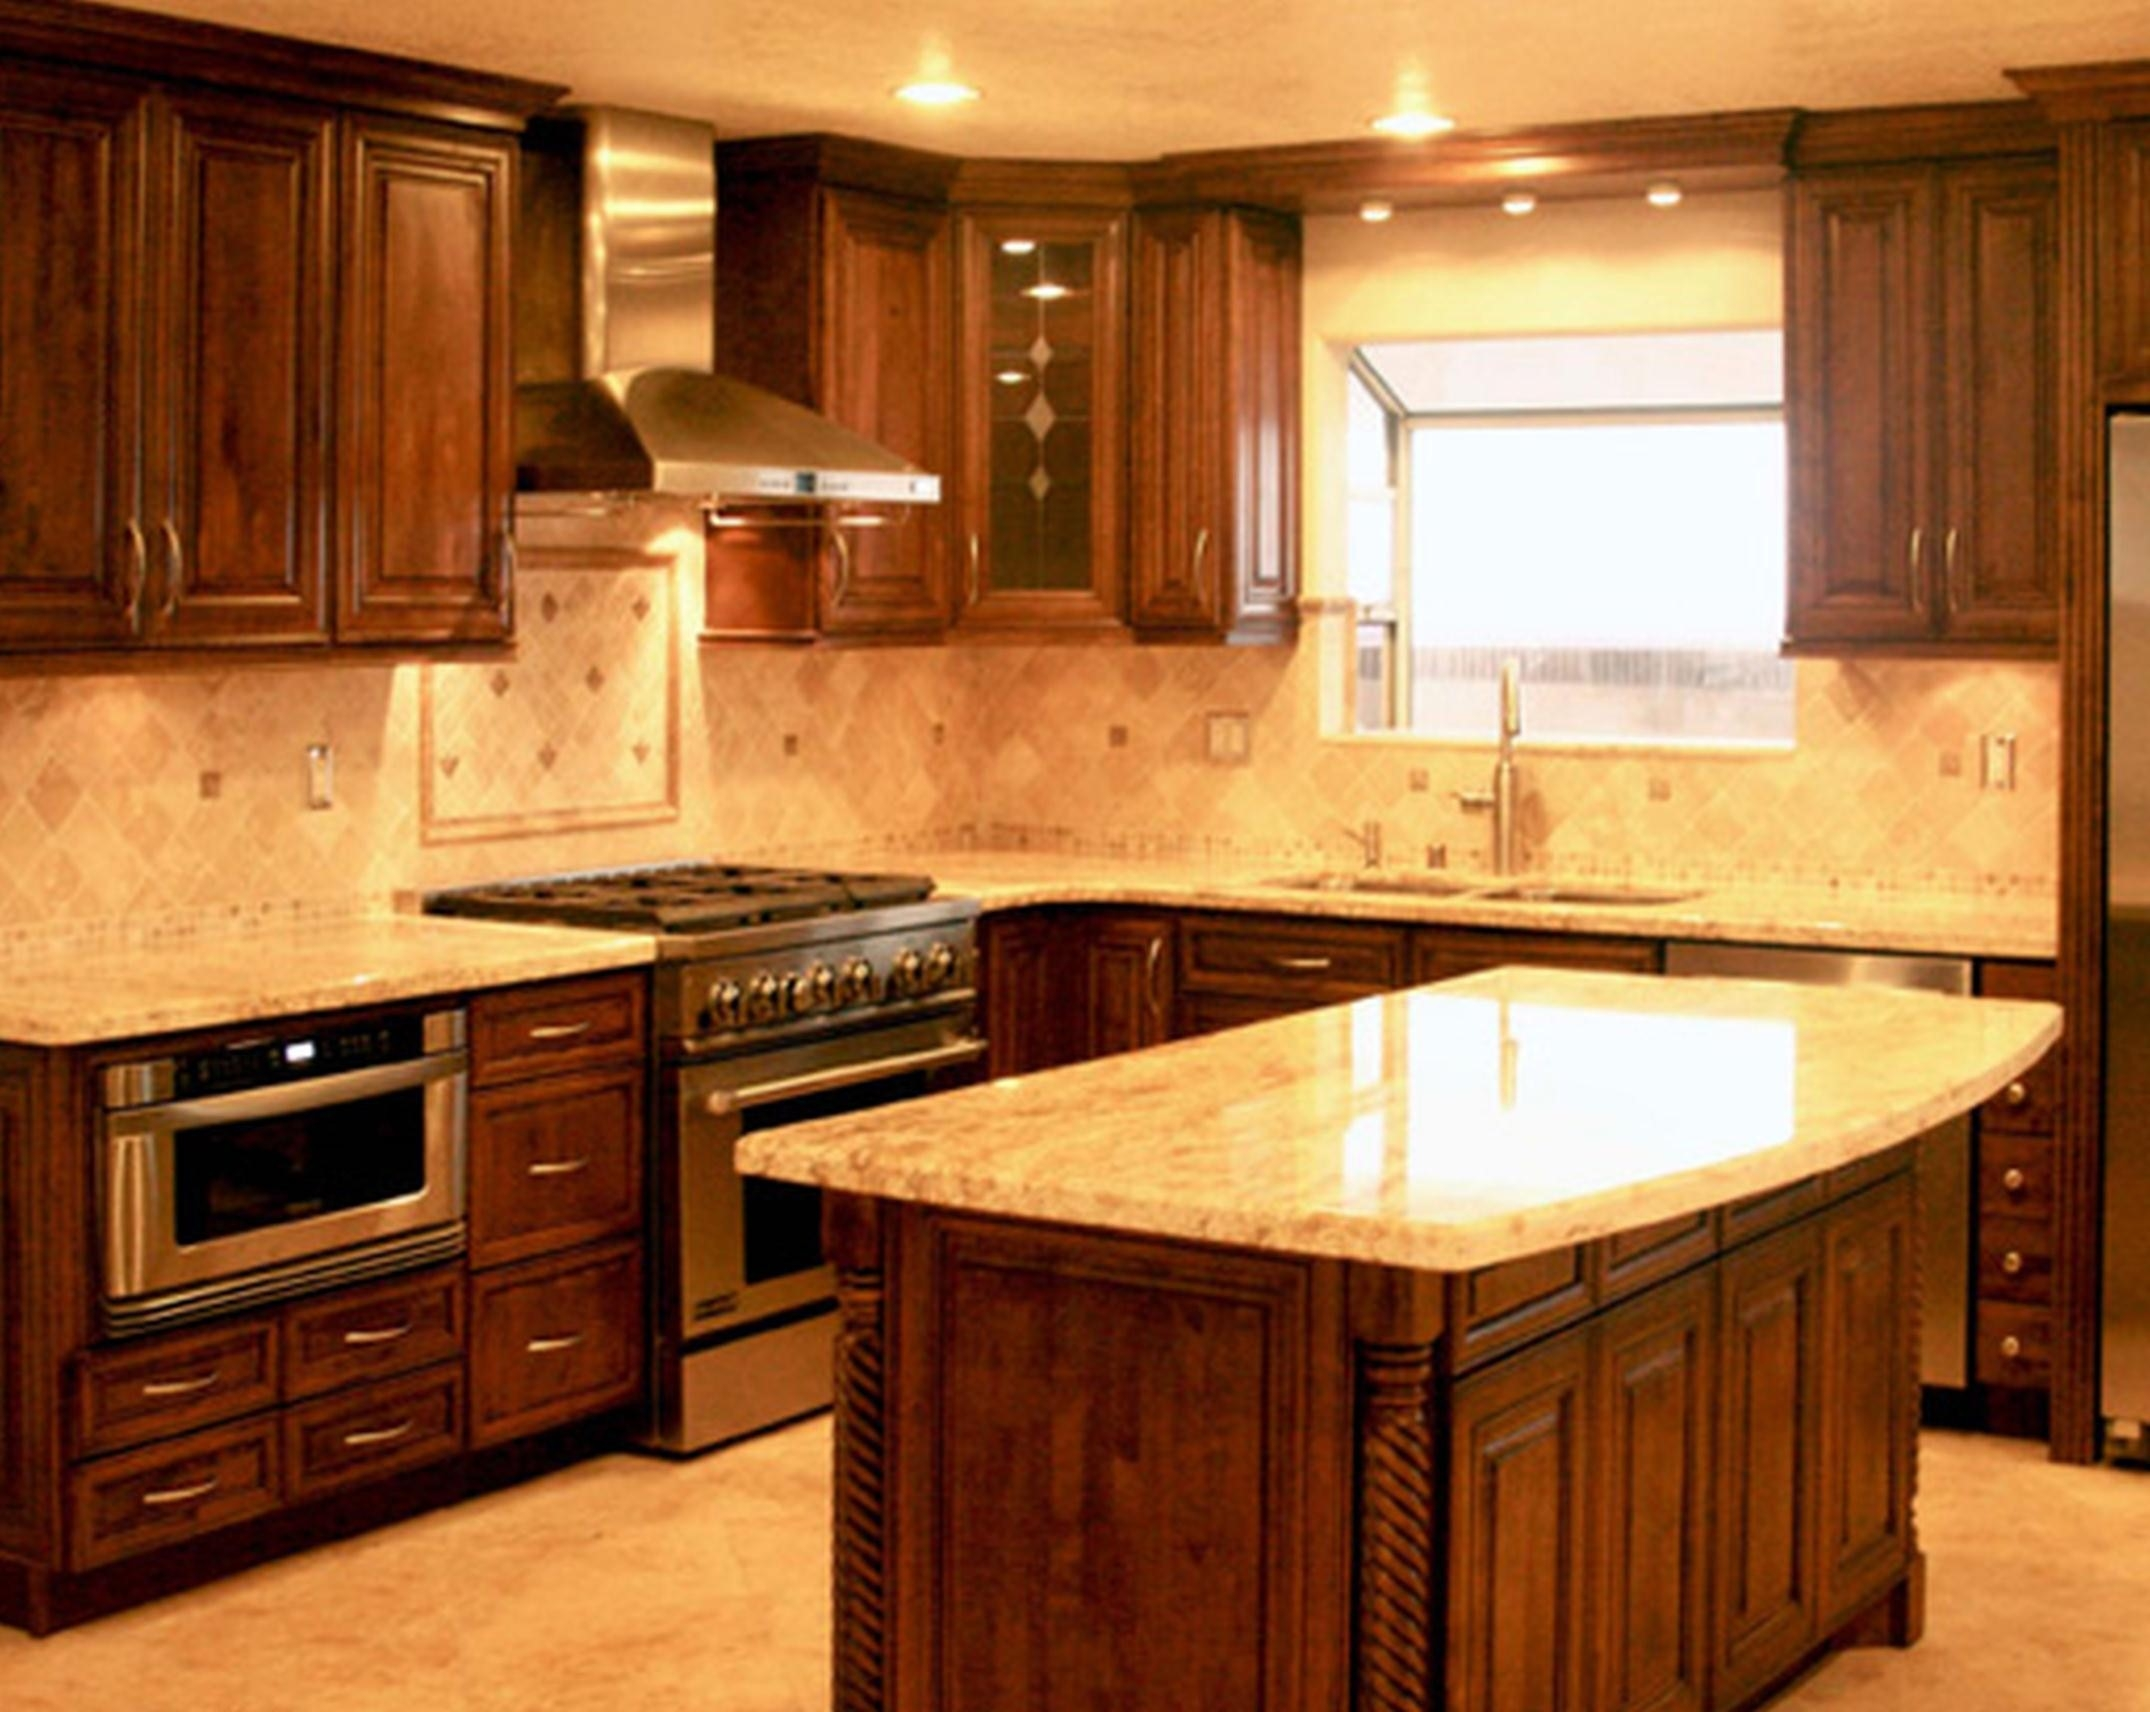 Yonkers Avenue Kitchen Cabinets